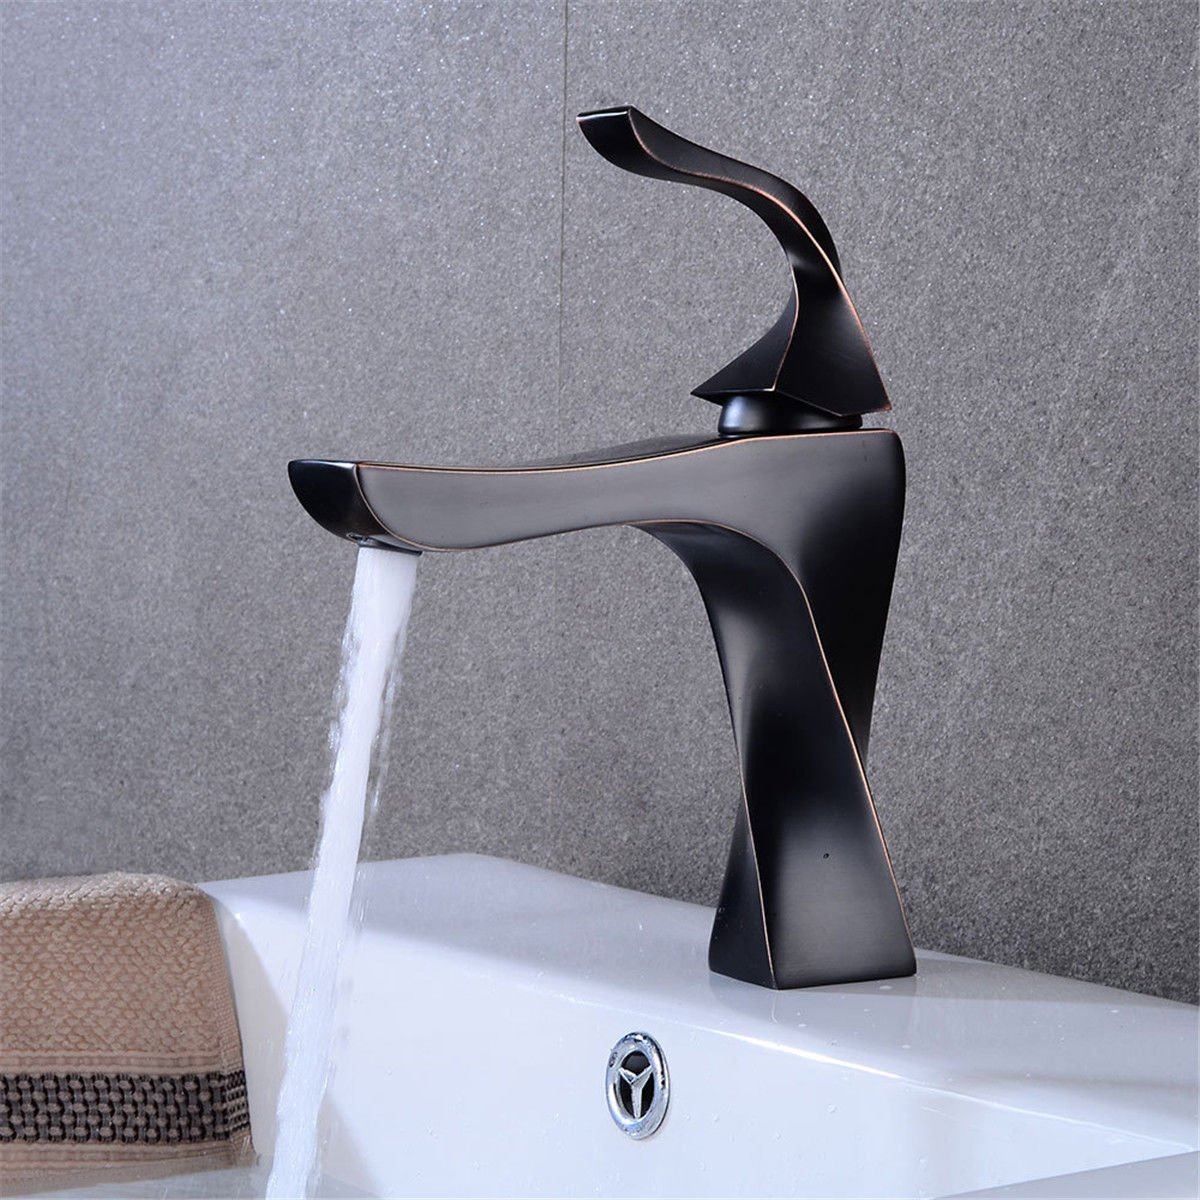 Lpophy Bathroom Sink Mixer Taps Faucet Bath Waterfall Cold and Hot Water Tap for Washroom Bathroom and Kitchen Retro Black Hot and Cold Water Single Hole